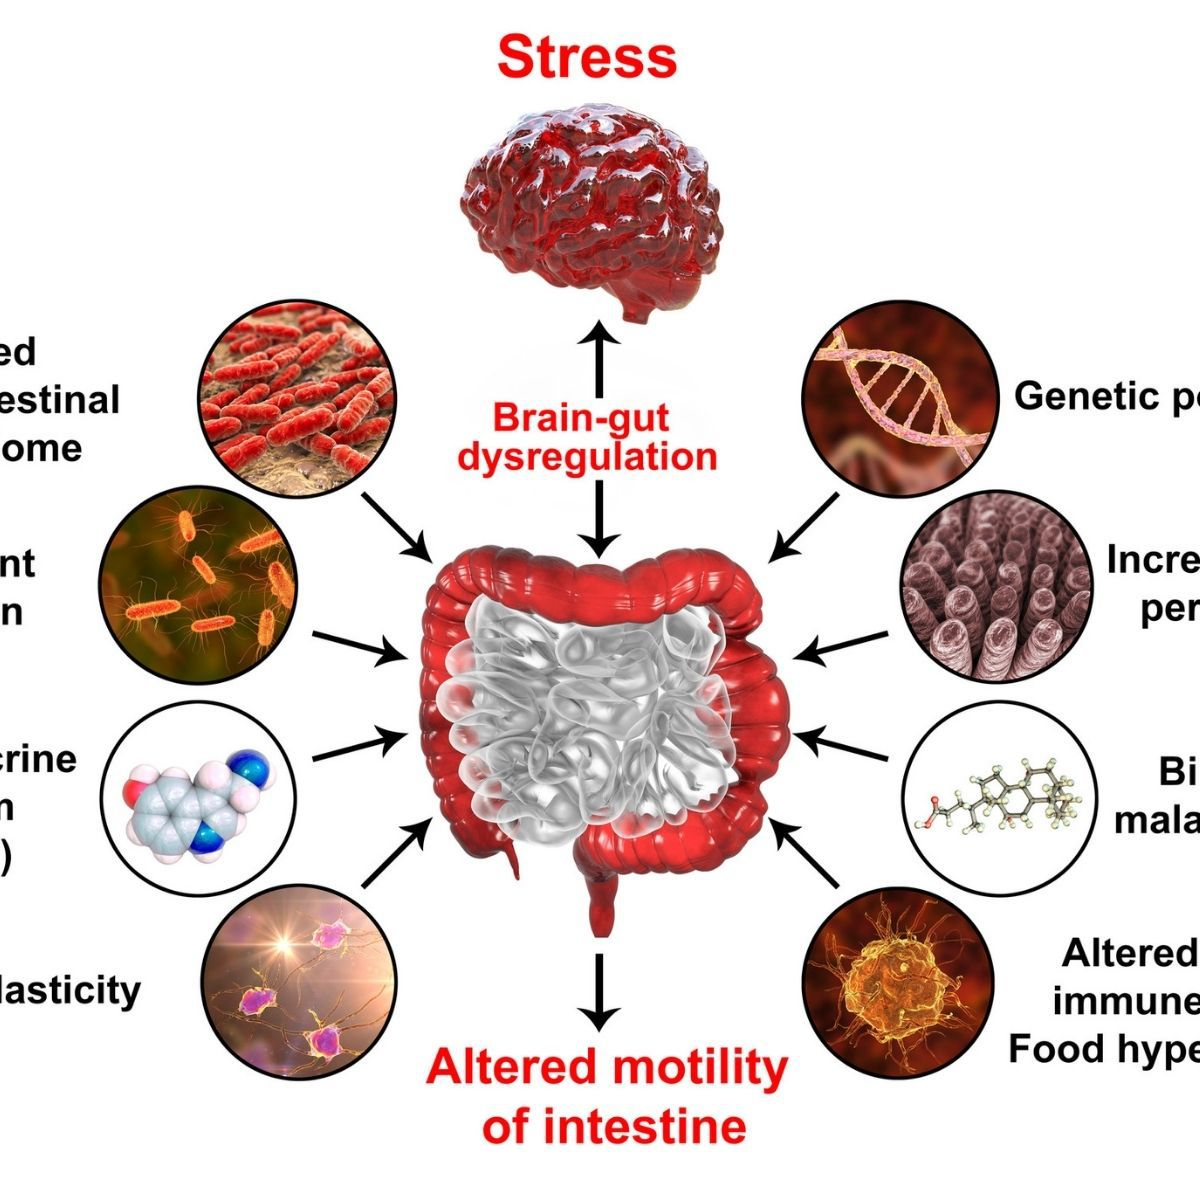 Gut brain axis infographic showing how stress leads to brain-gut dysregulation and altered intestinal motility.